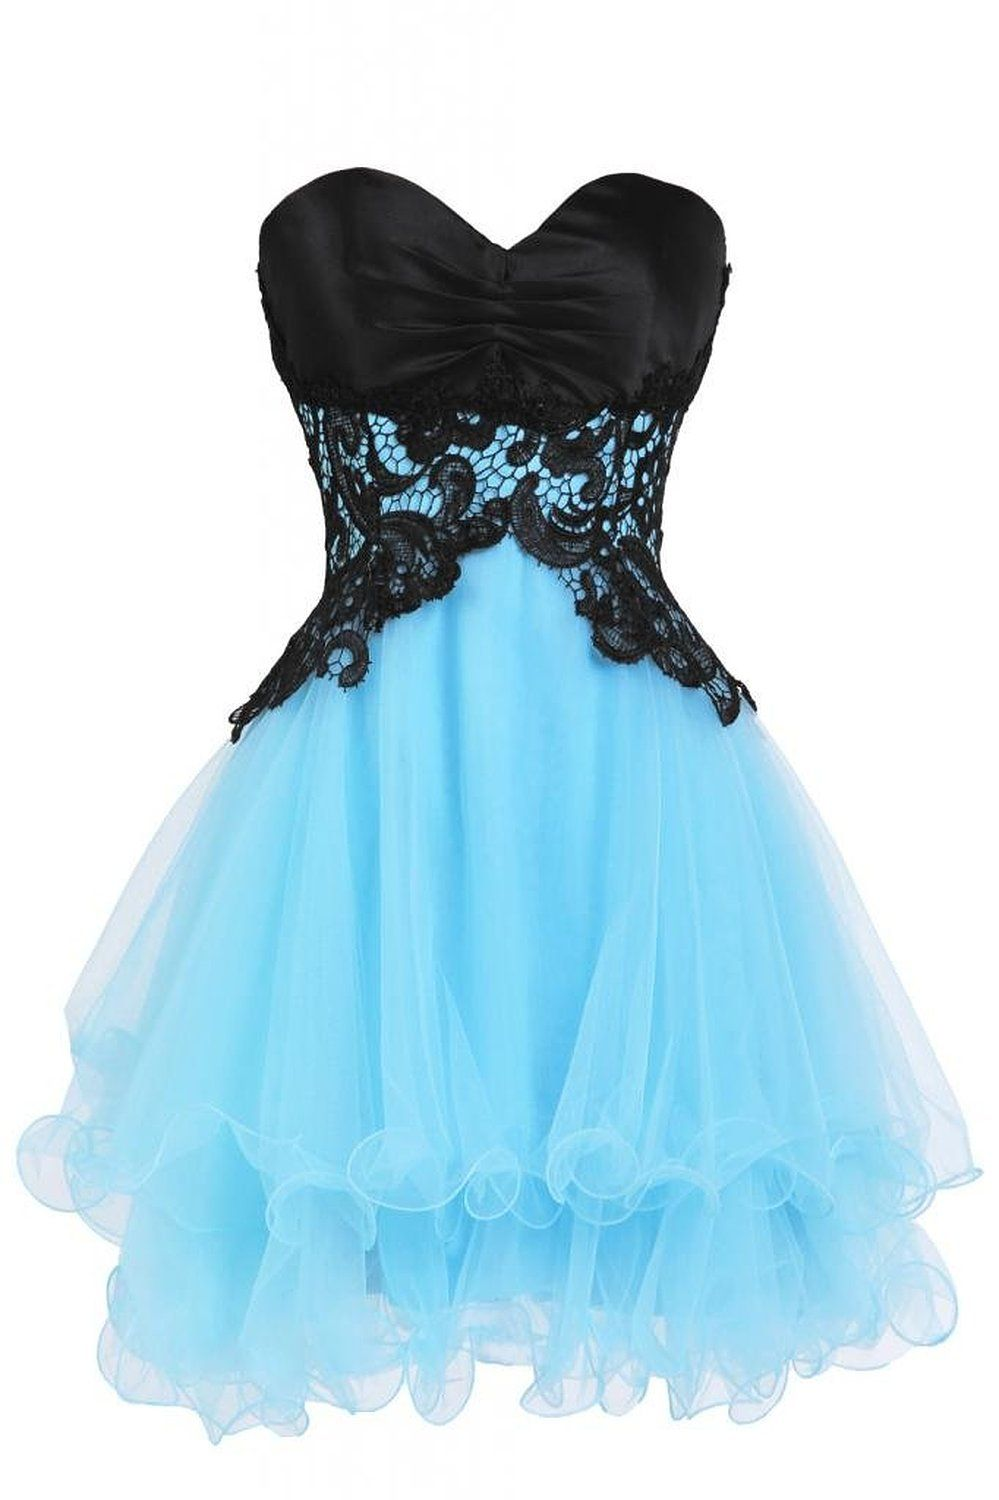 Mini aline organza sweetheart homecoming dresses appliques laceup